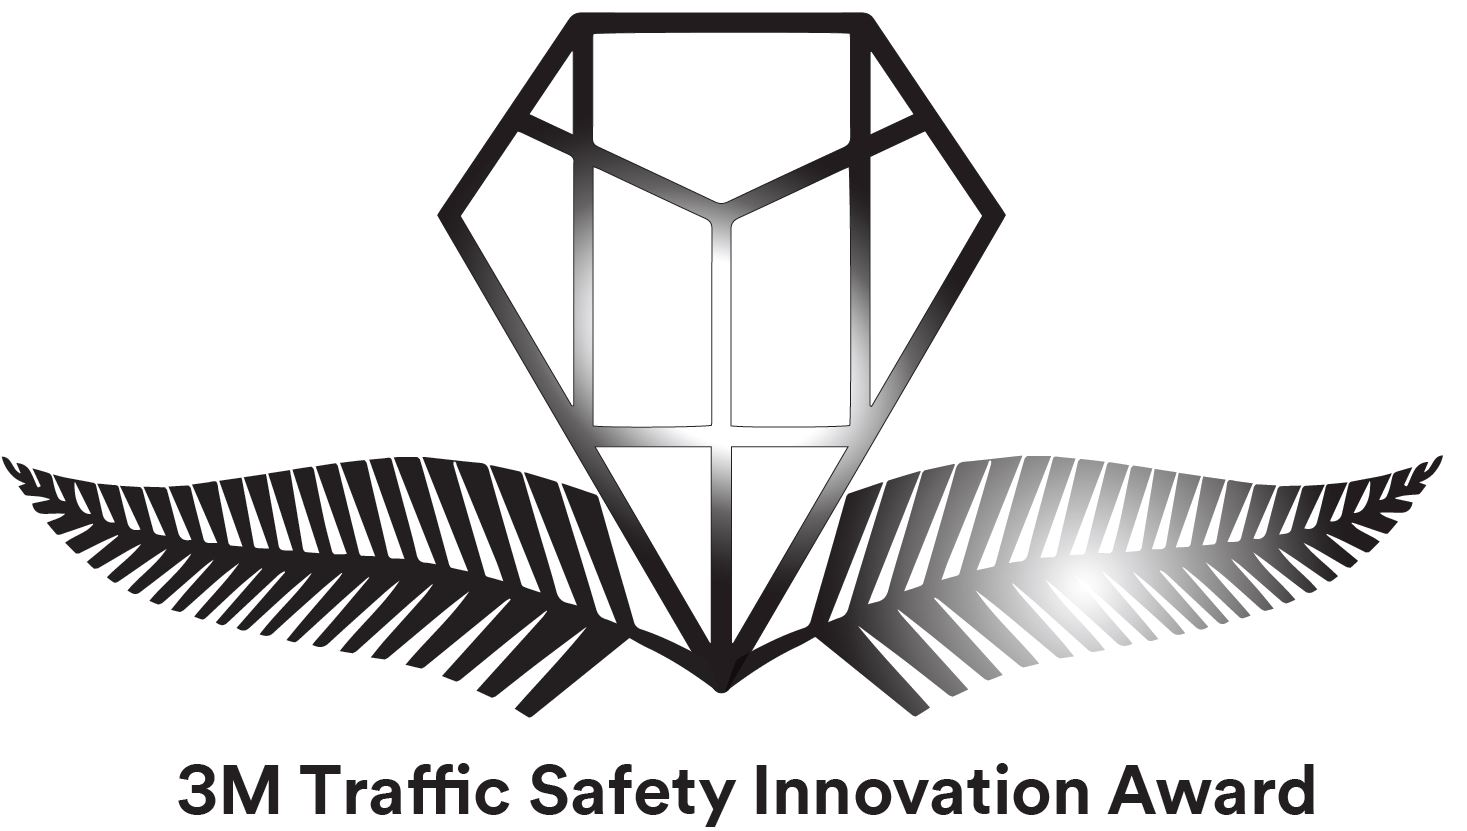 3M Traffic Safety Innovation Award logo.JPG